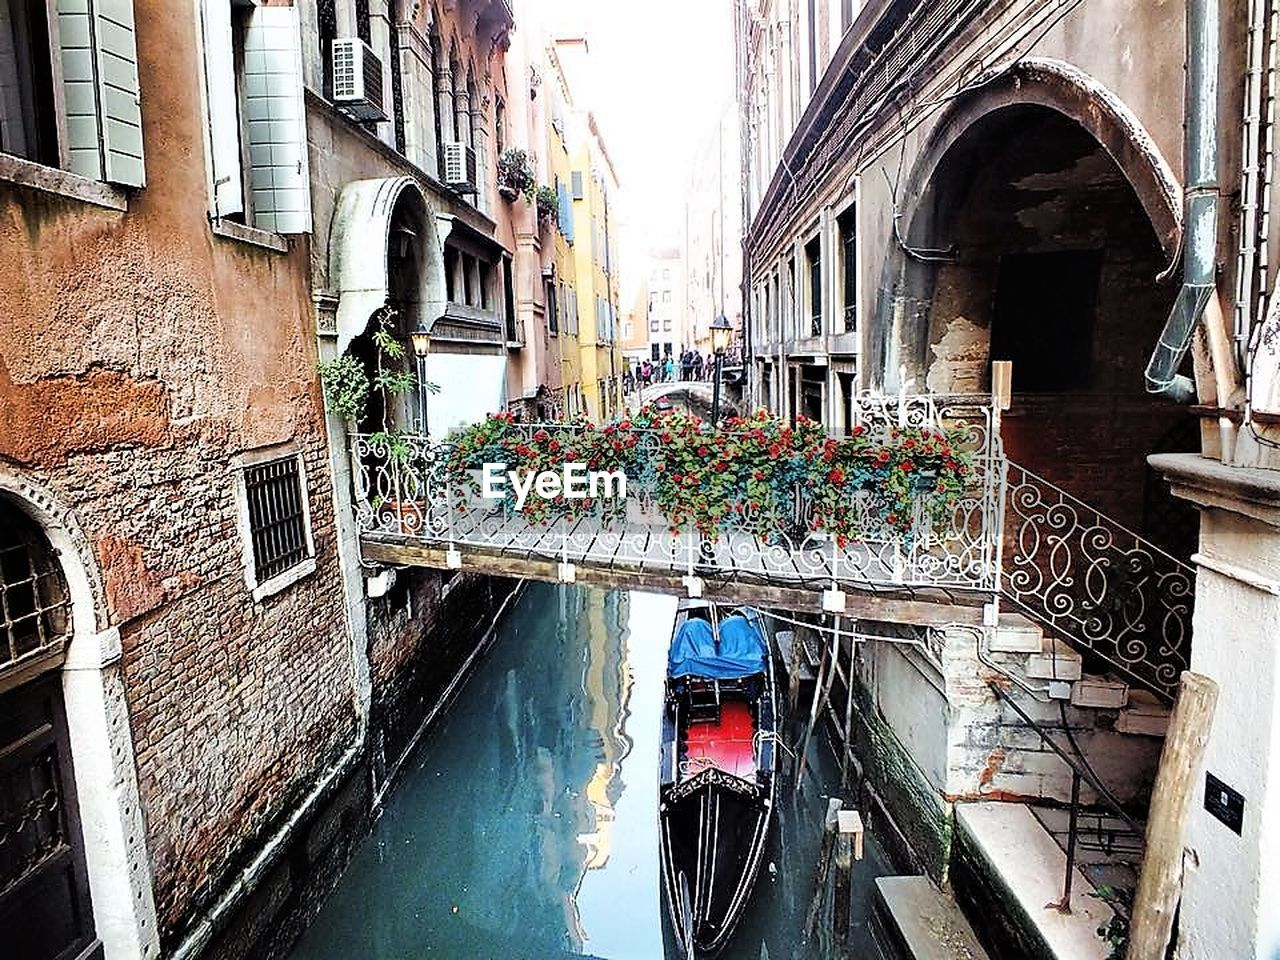 architecture, building exterior, built structure, day, window, canal, transportation, mode of transport, outdoors, water, no people, window box, gondola - traditional boat